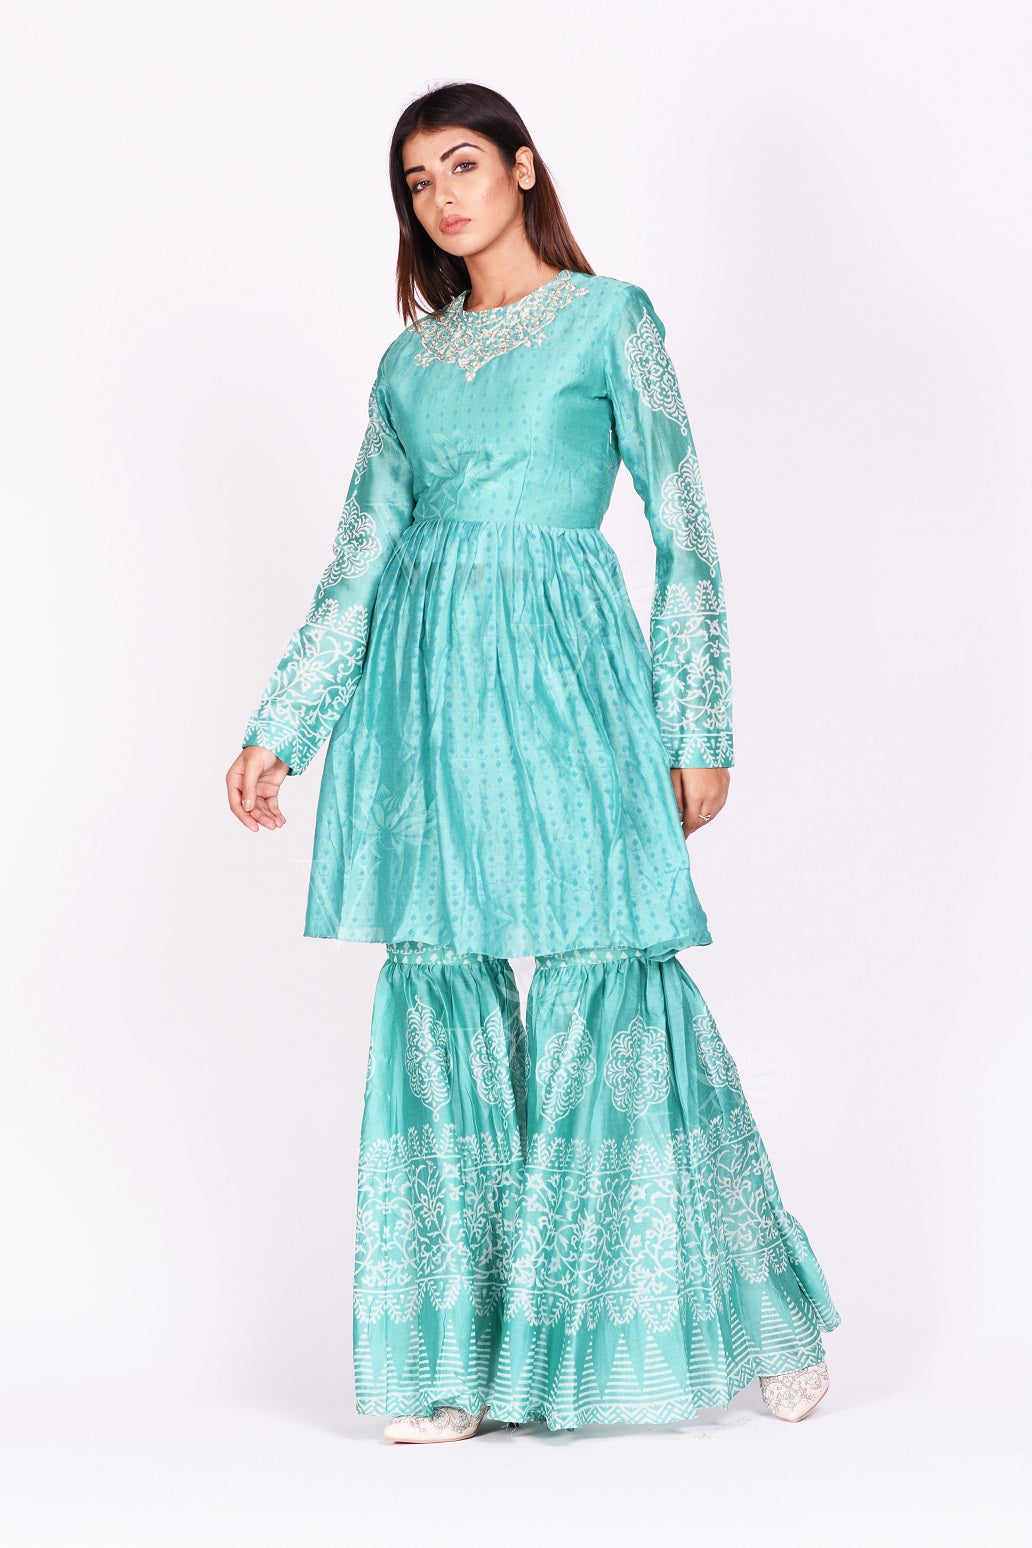 Buy stunning mint green printed silk sharara set online in USA. Make a stunning fashion statement at weddings and special occasions with an exquisite collection of designer Anarkali suits, designer lehengas, Indian designer dresses from Pure Elegance Indian fashion store in USA. -sidepose